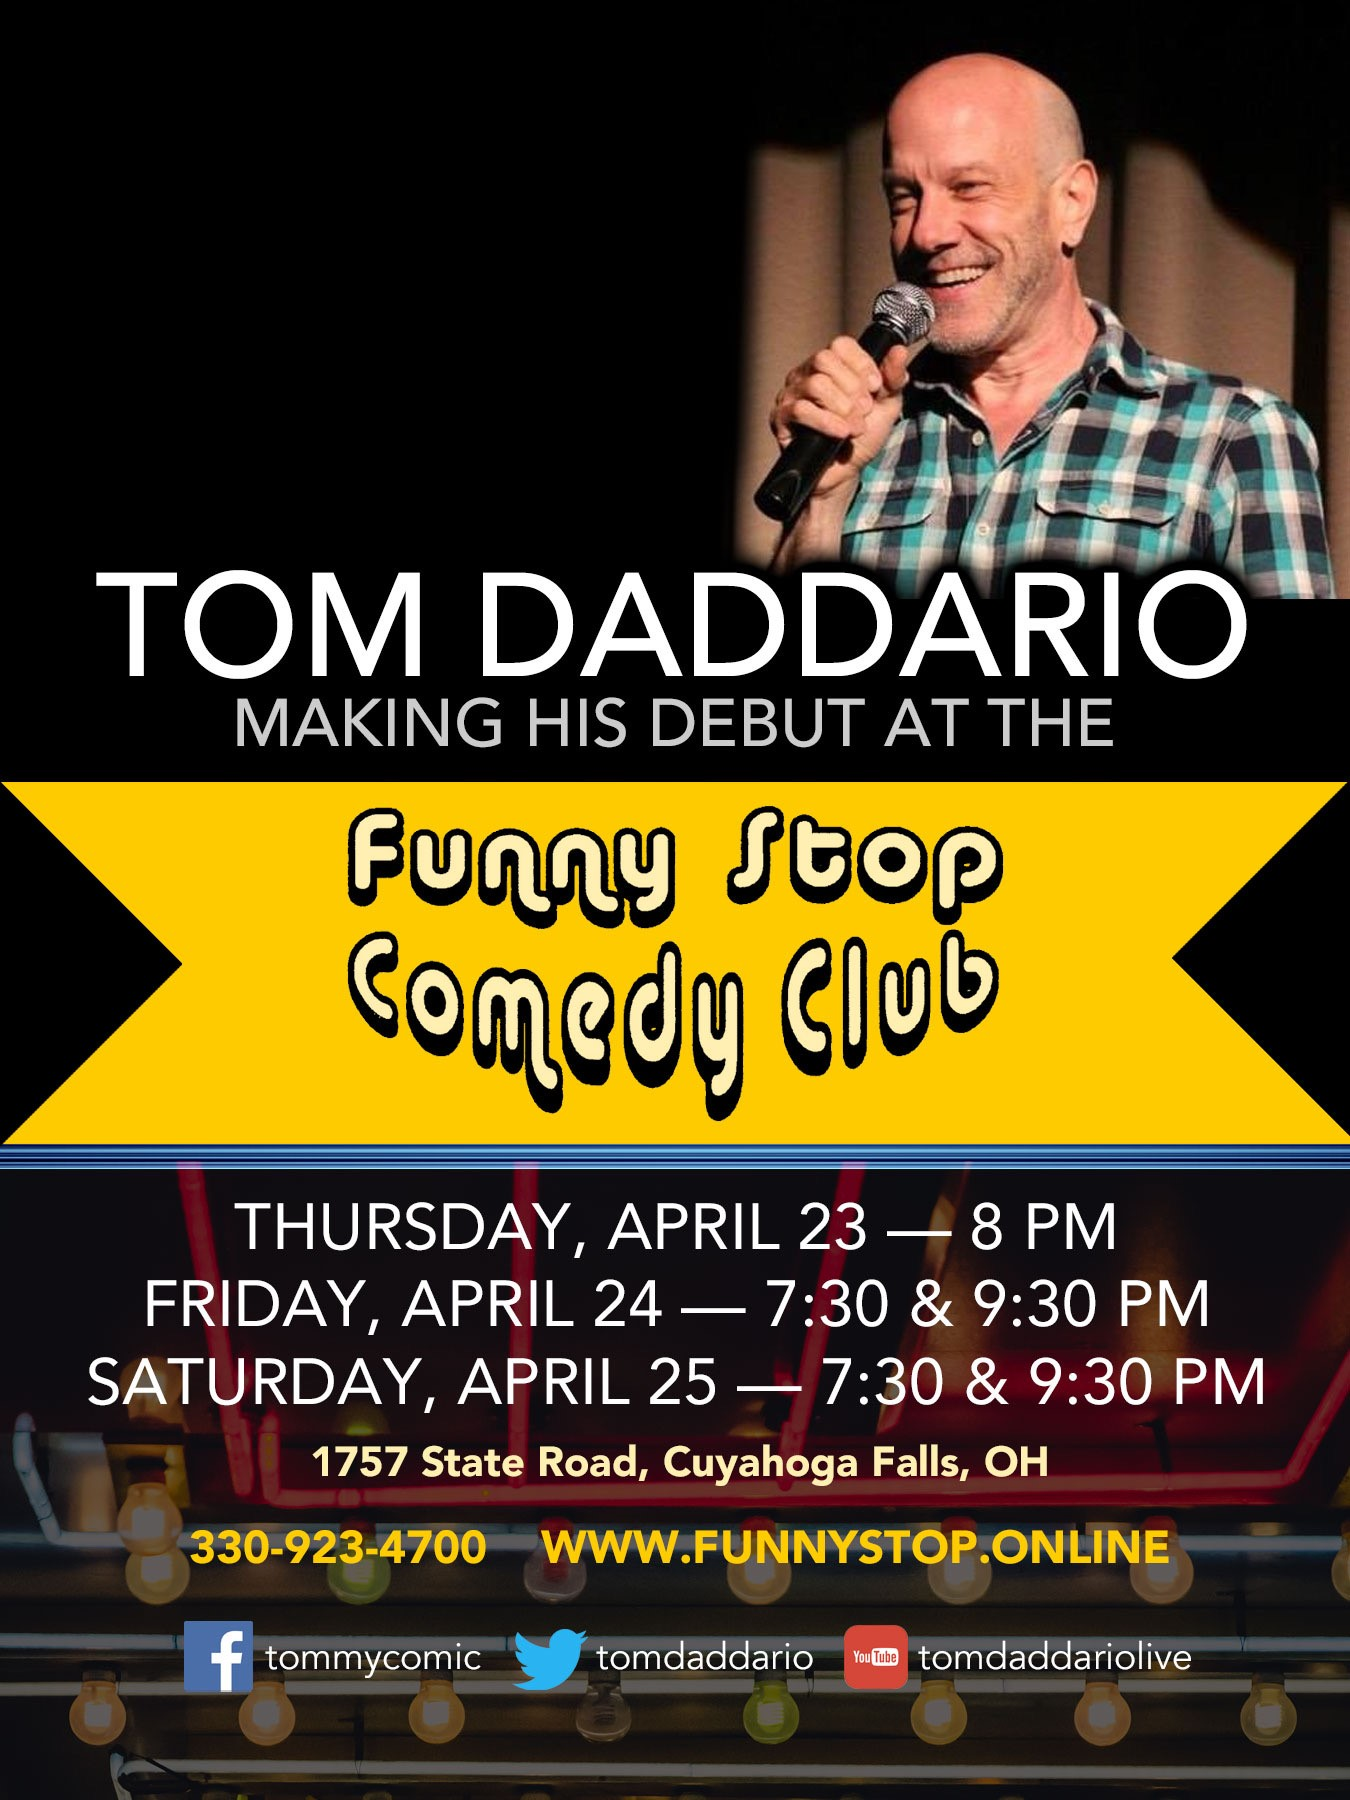 Tom Daddario 7:30 Show  on Apr 24, 19:30@Funny Stop Comedy Club - Buy tickets and Get information on Funny Stop funnystop.online